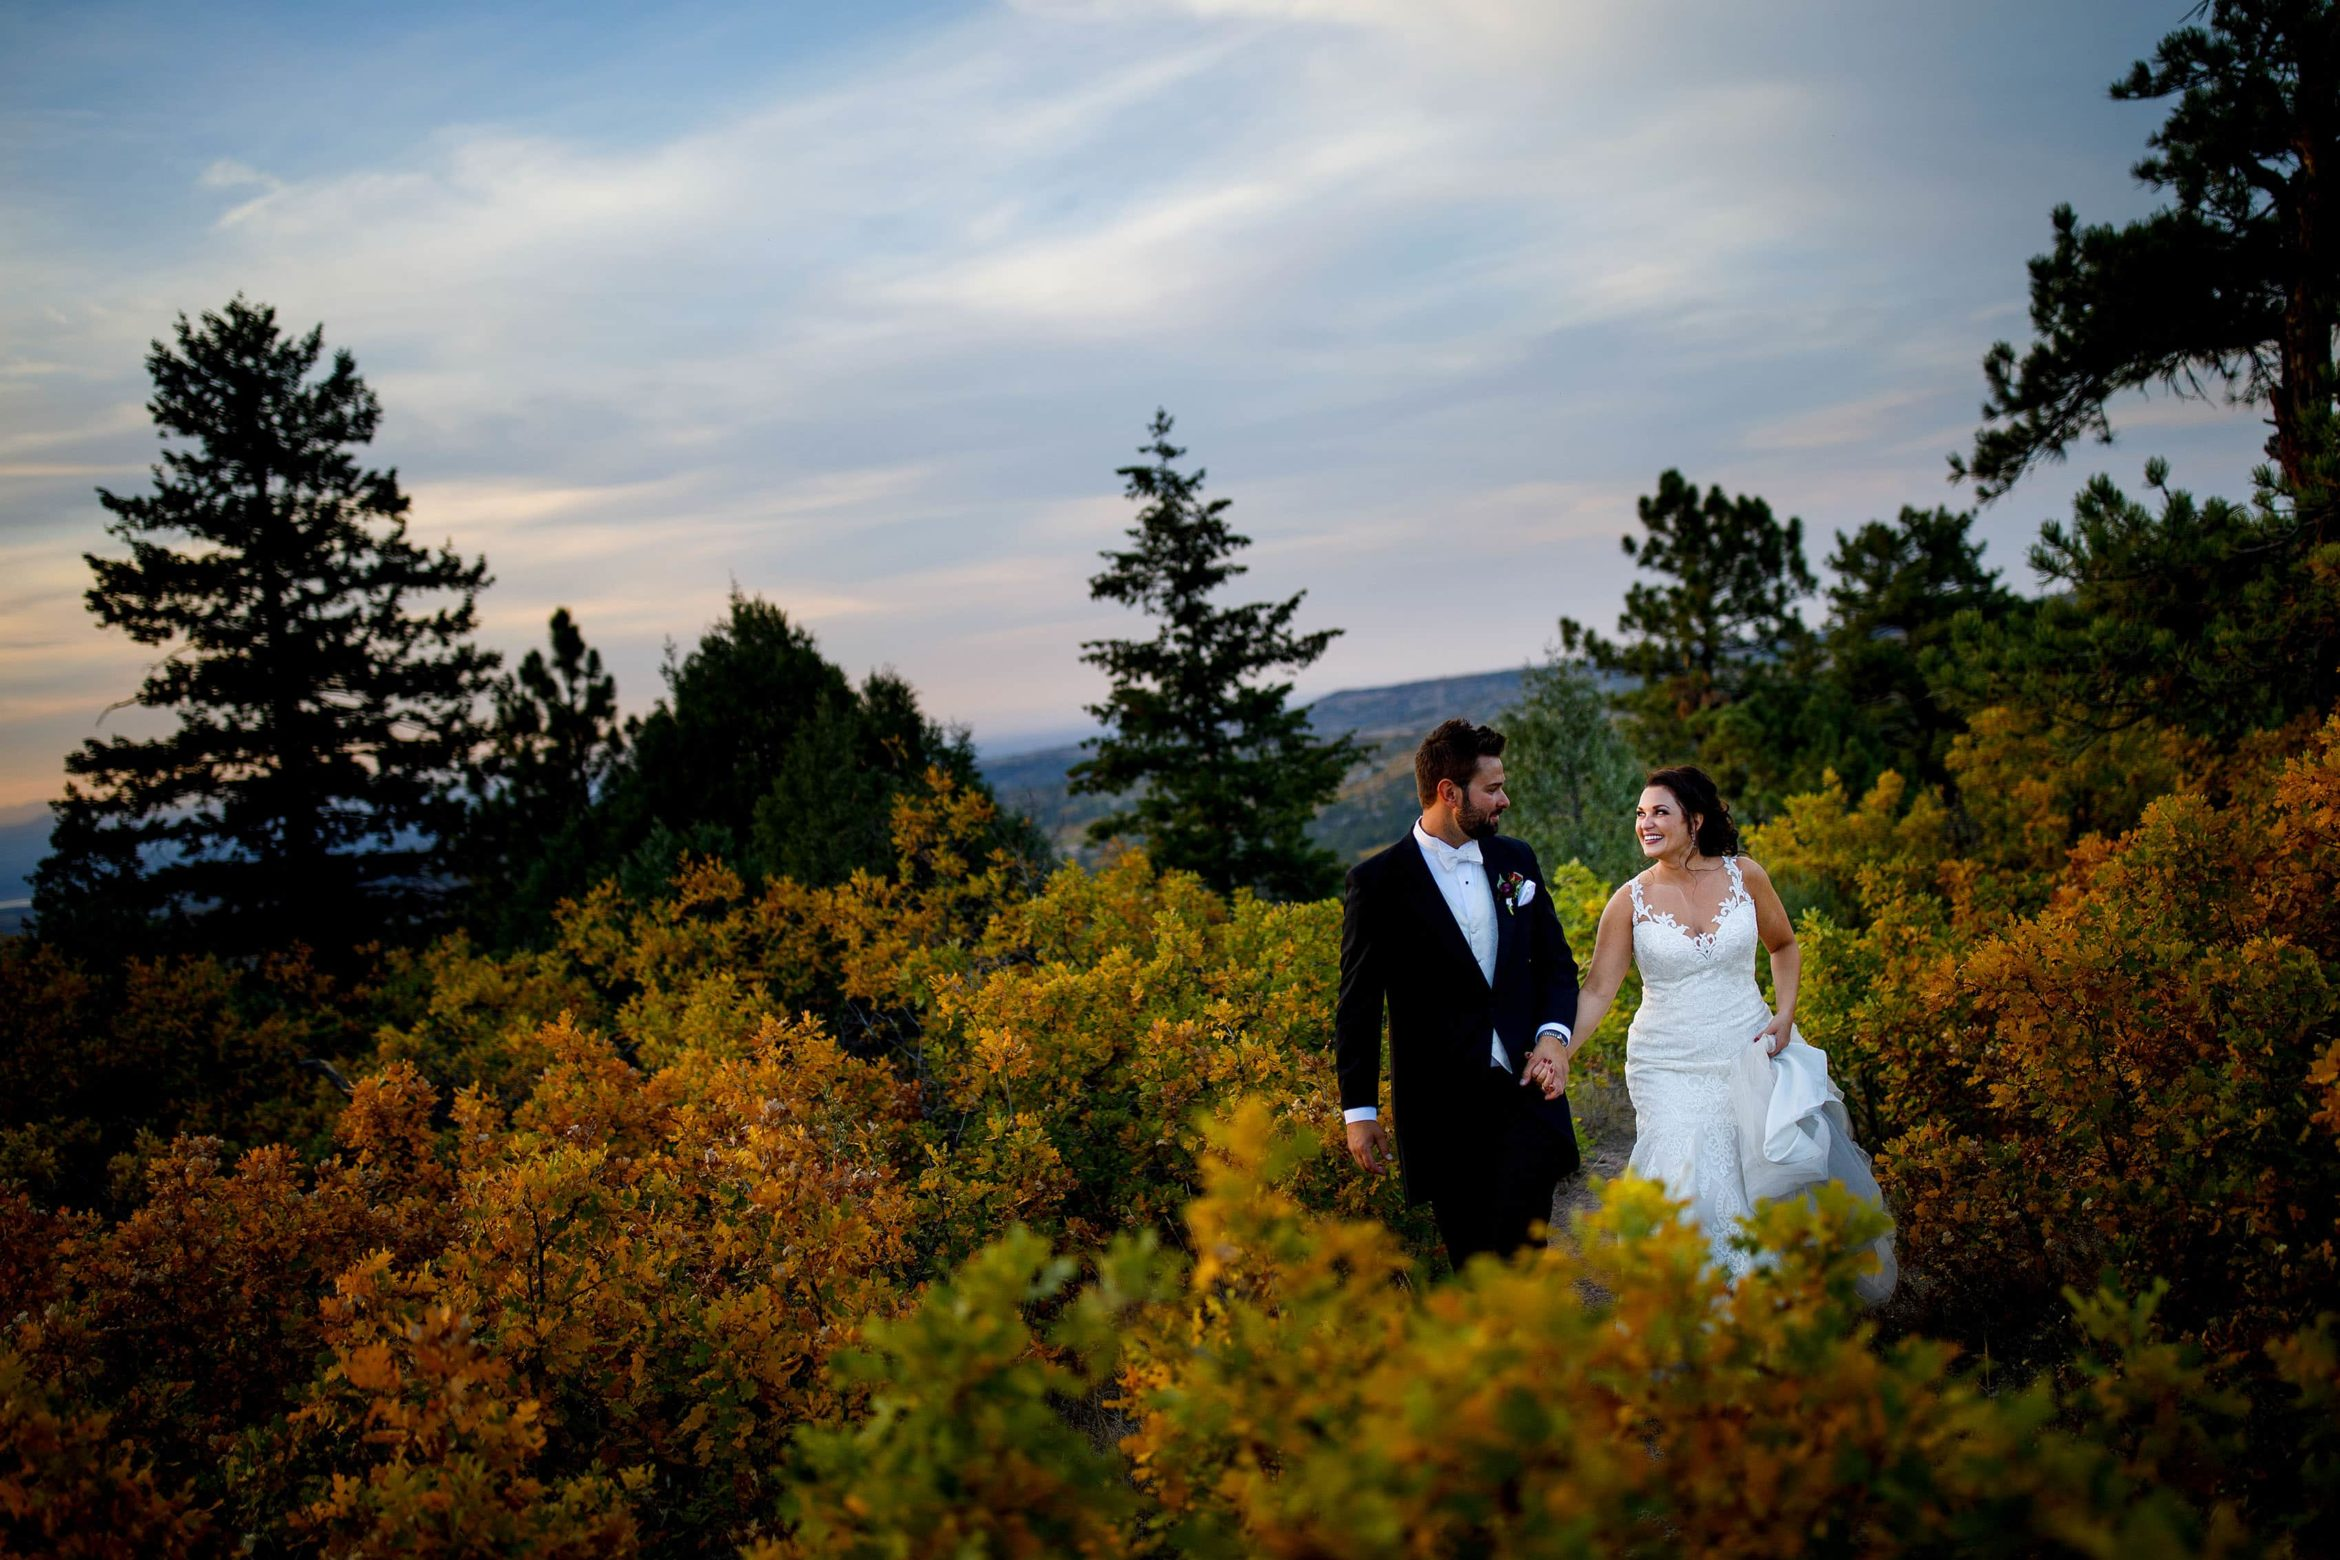 Melissa and Jordan walk together near Cherokee Ranch and Castle after their wedding in Sedalia